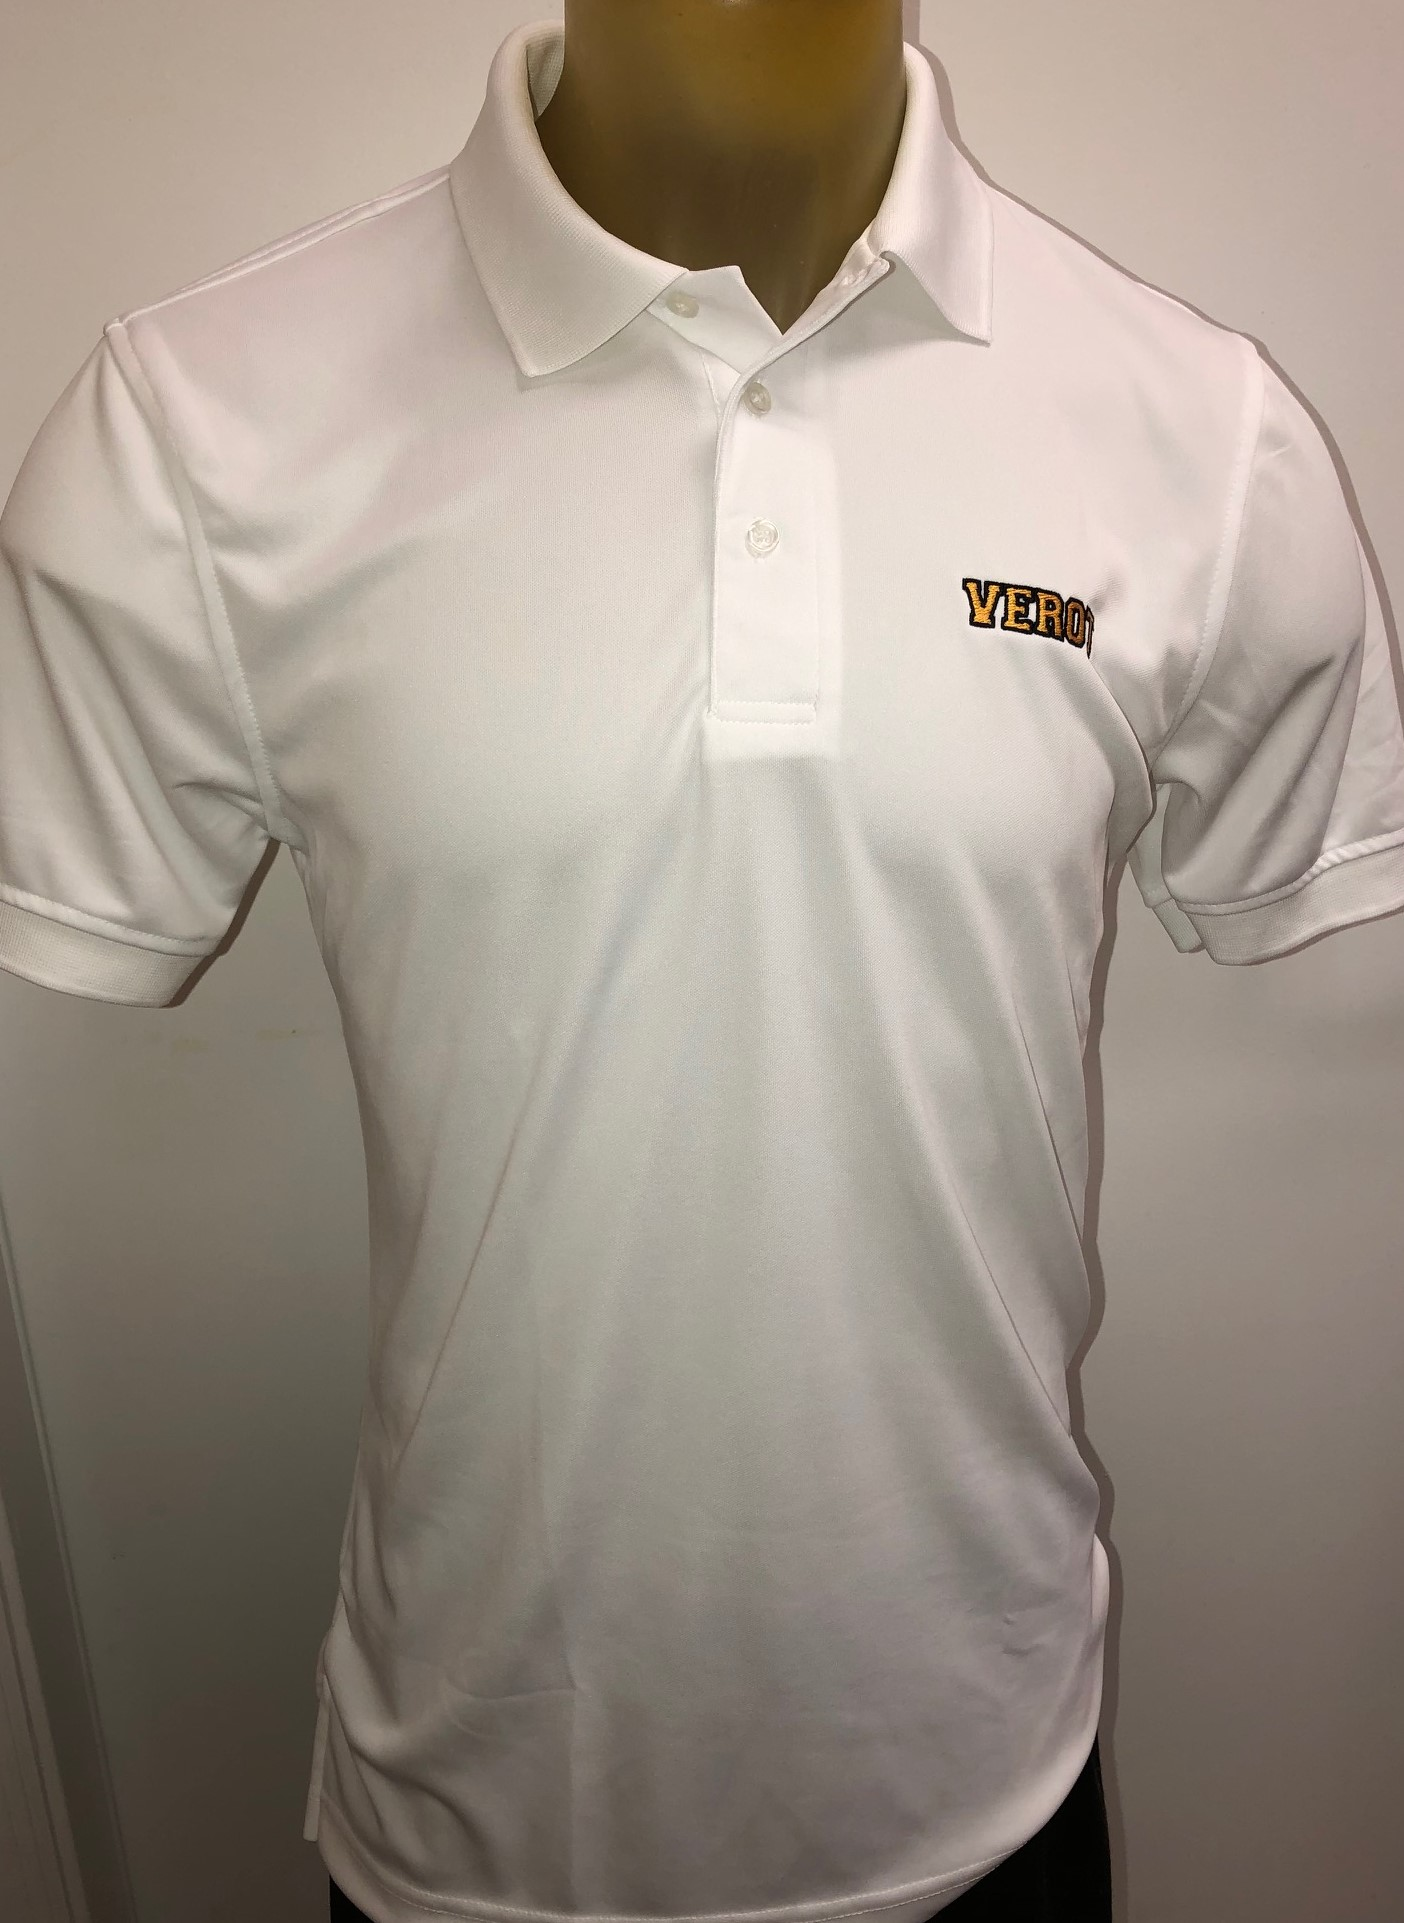 BVHS MEN'S DRI FIT POLO